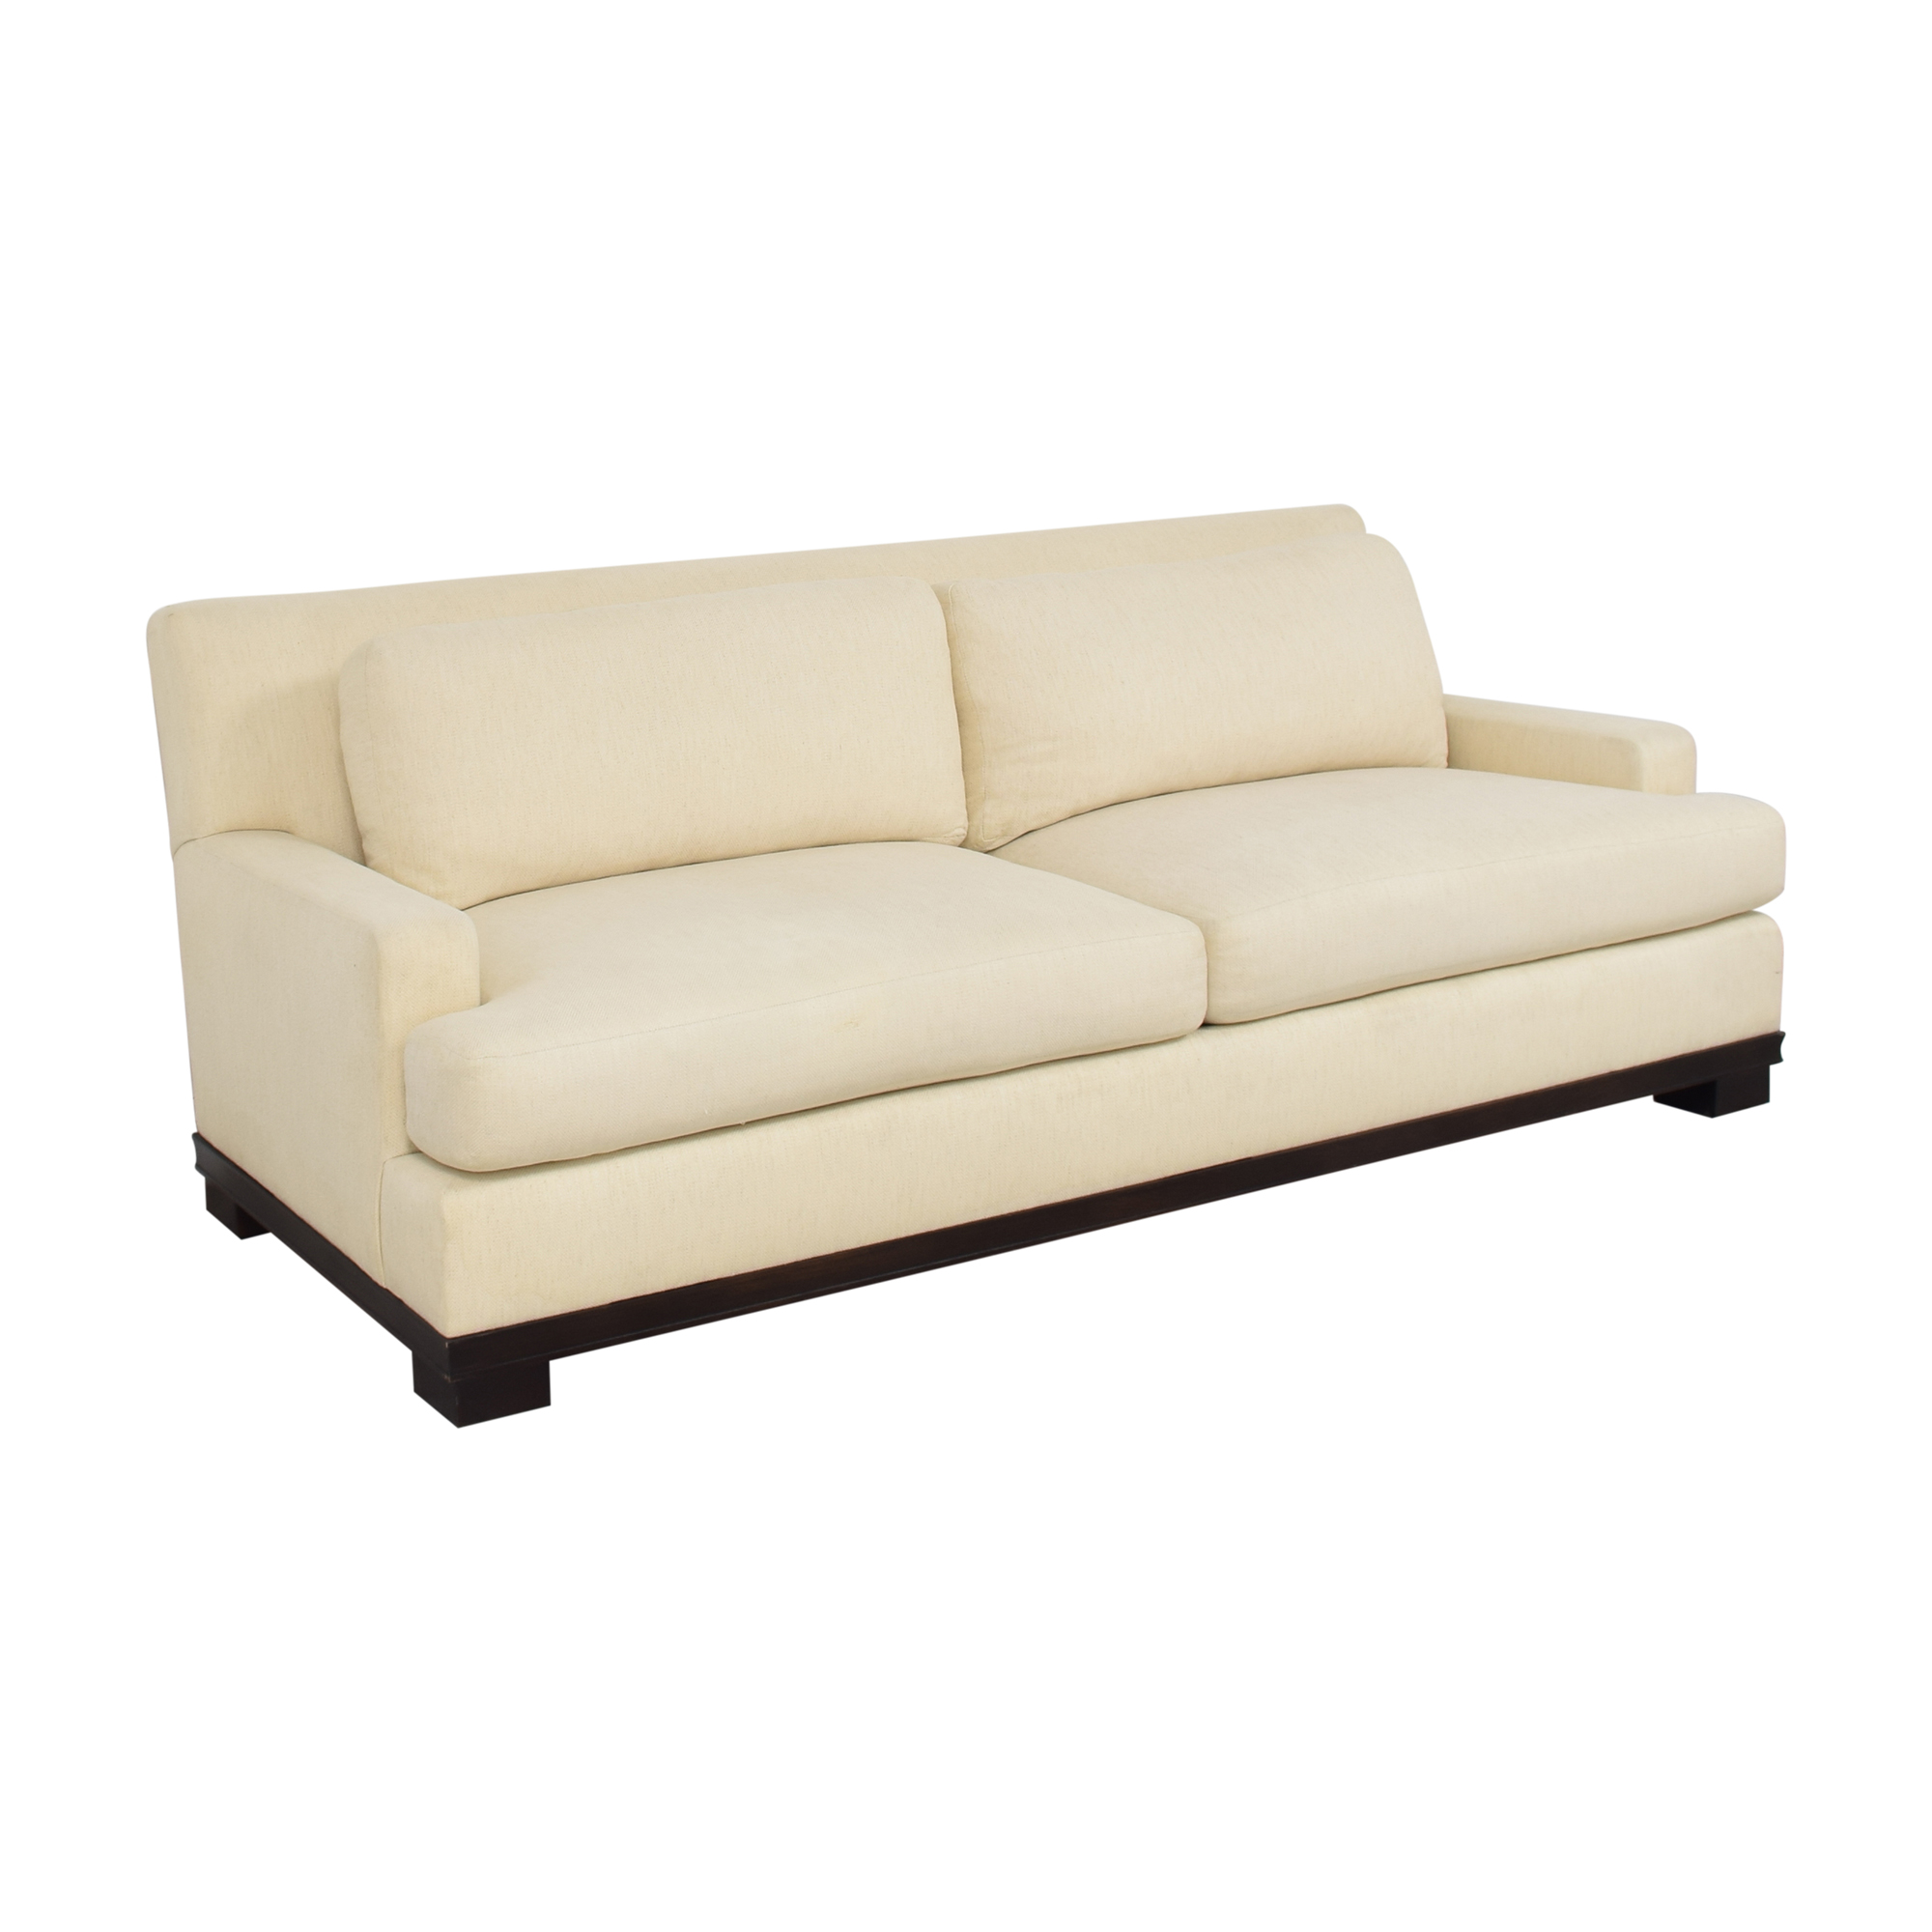 Bloomingdale's Bloomingdale's by Barbara Barry Oval Collection Sofa dimensions